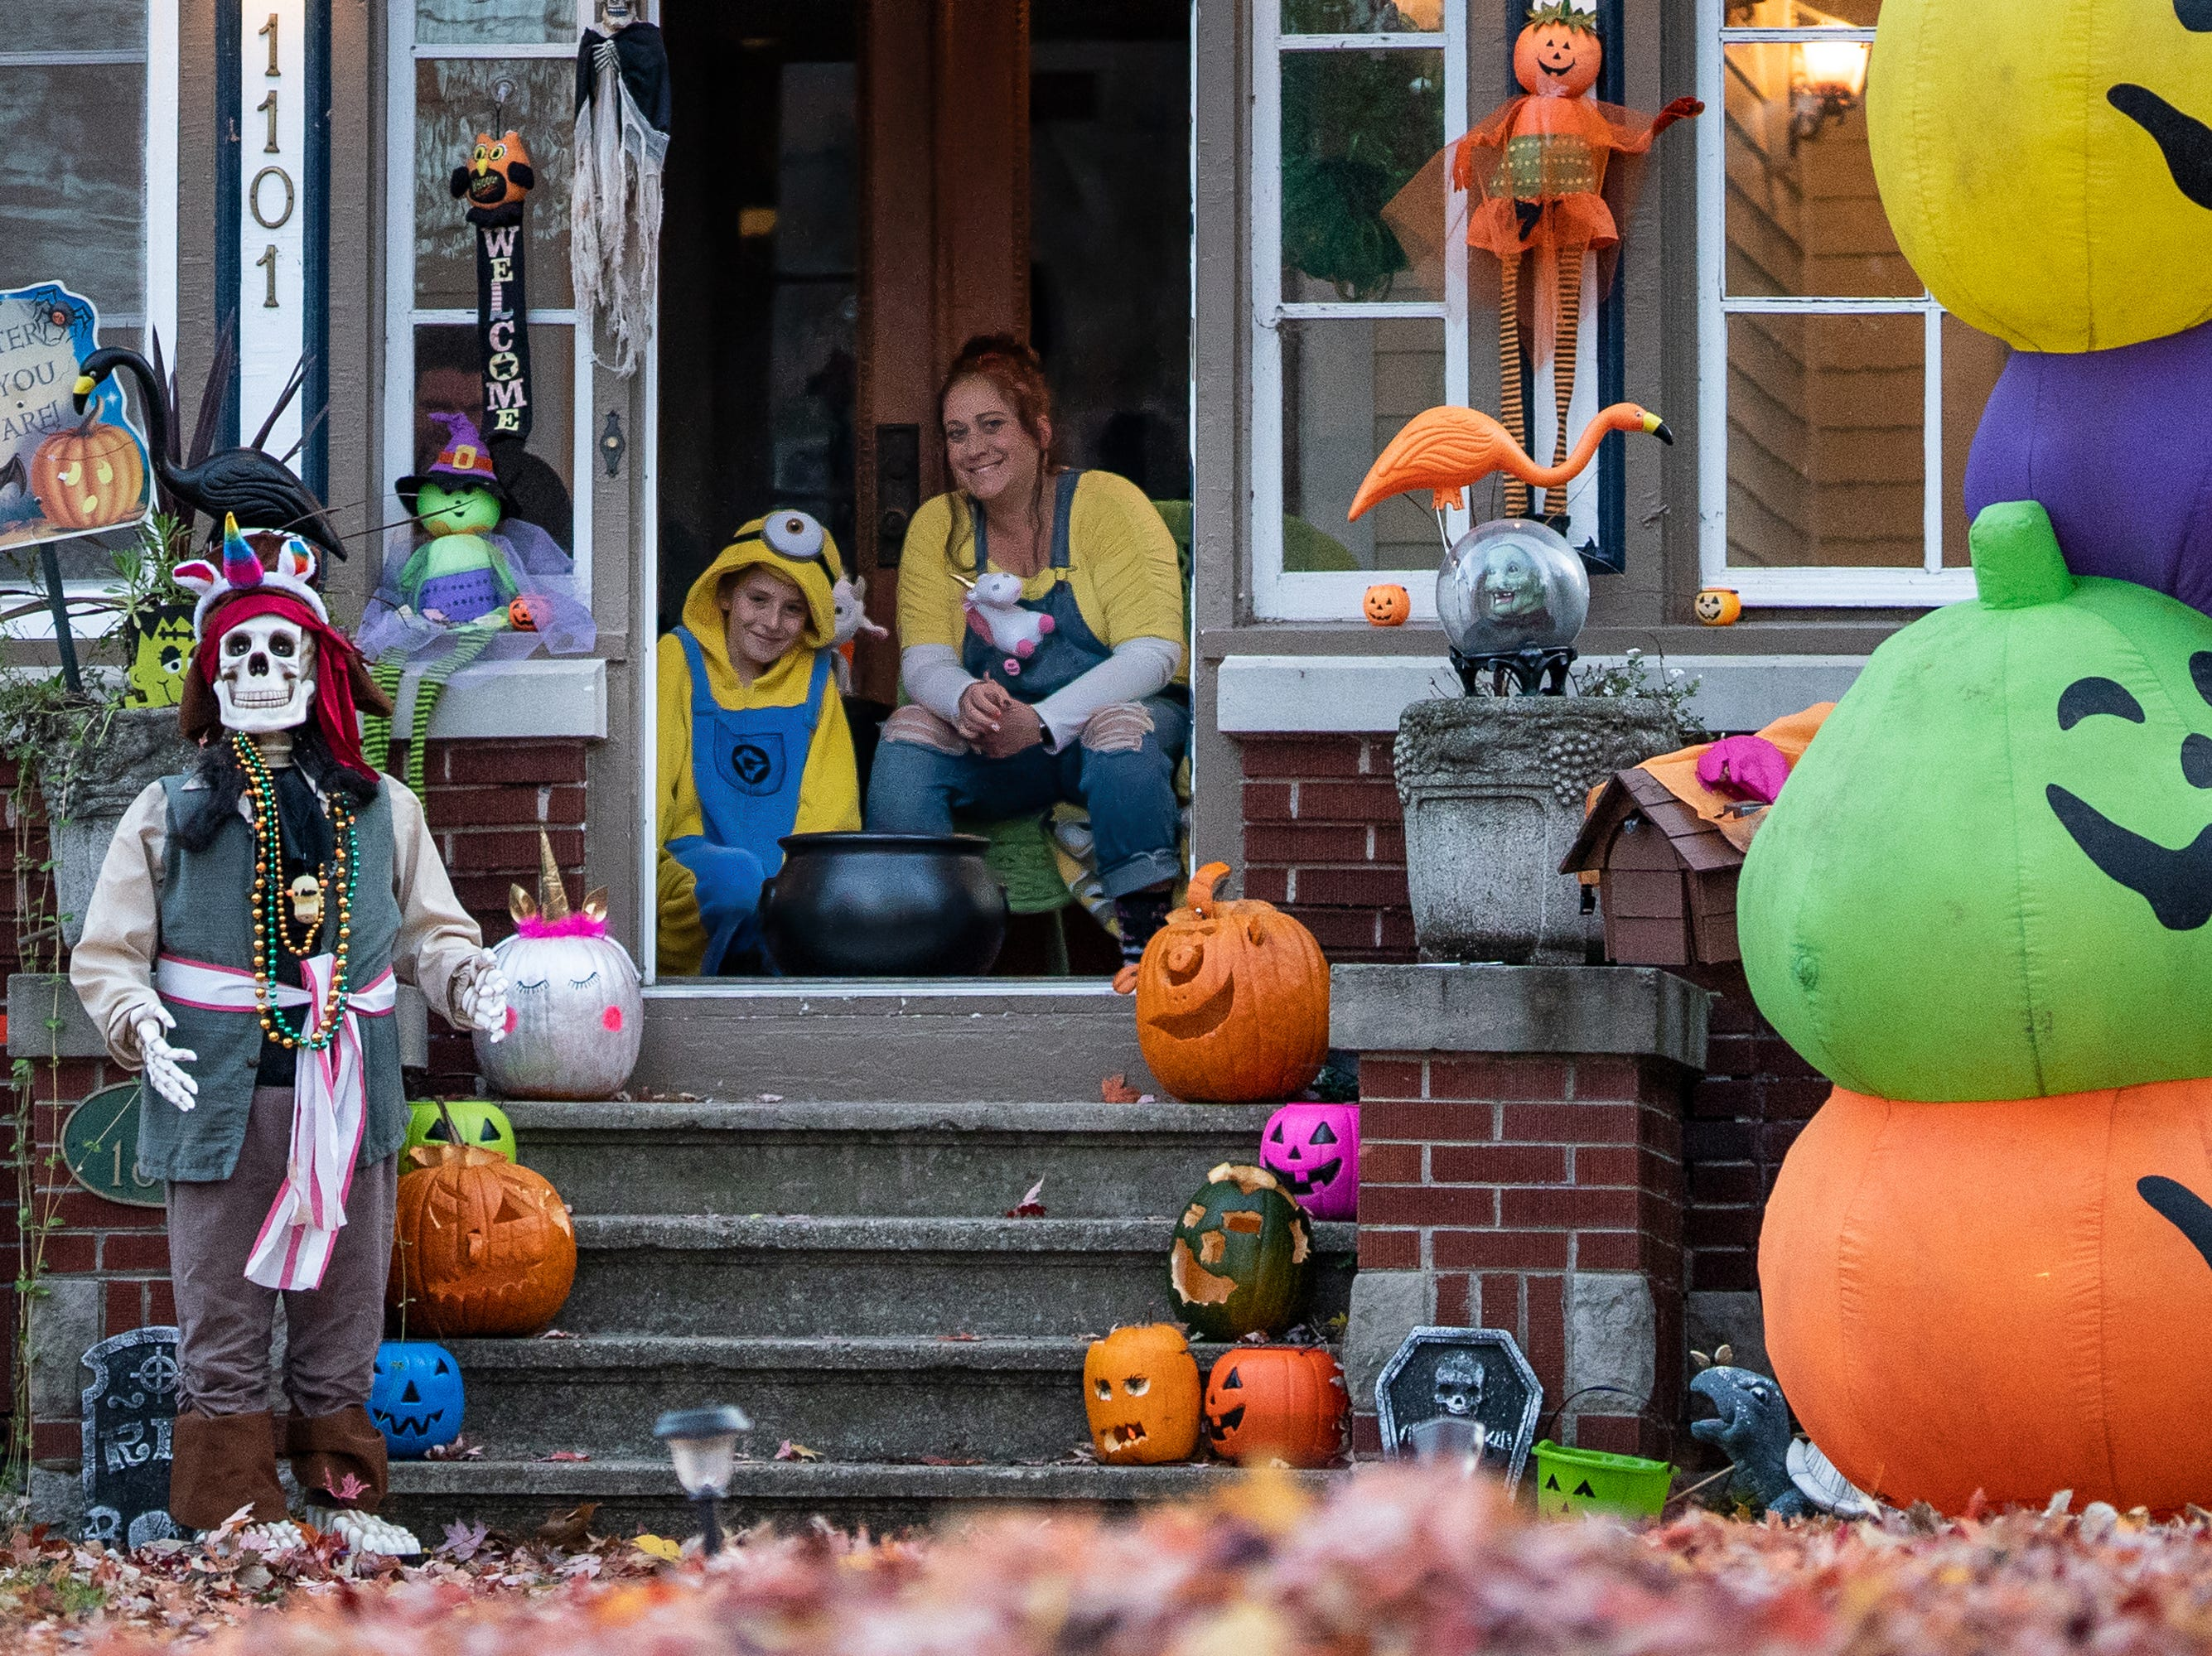 Titus Schroeder and his mother wait on their Merritt Avenue porch for trick or treaters. Children, along with their parents, made the most of the beautiful autumn weather to trick or treat in Oshkosh Wednesday evening.